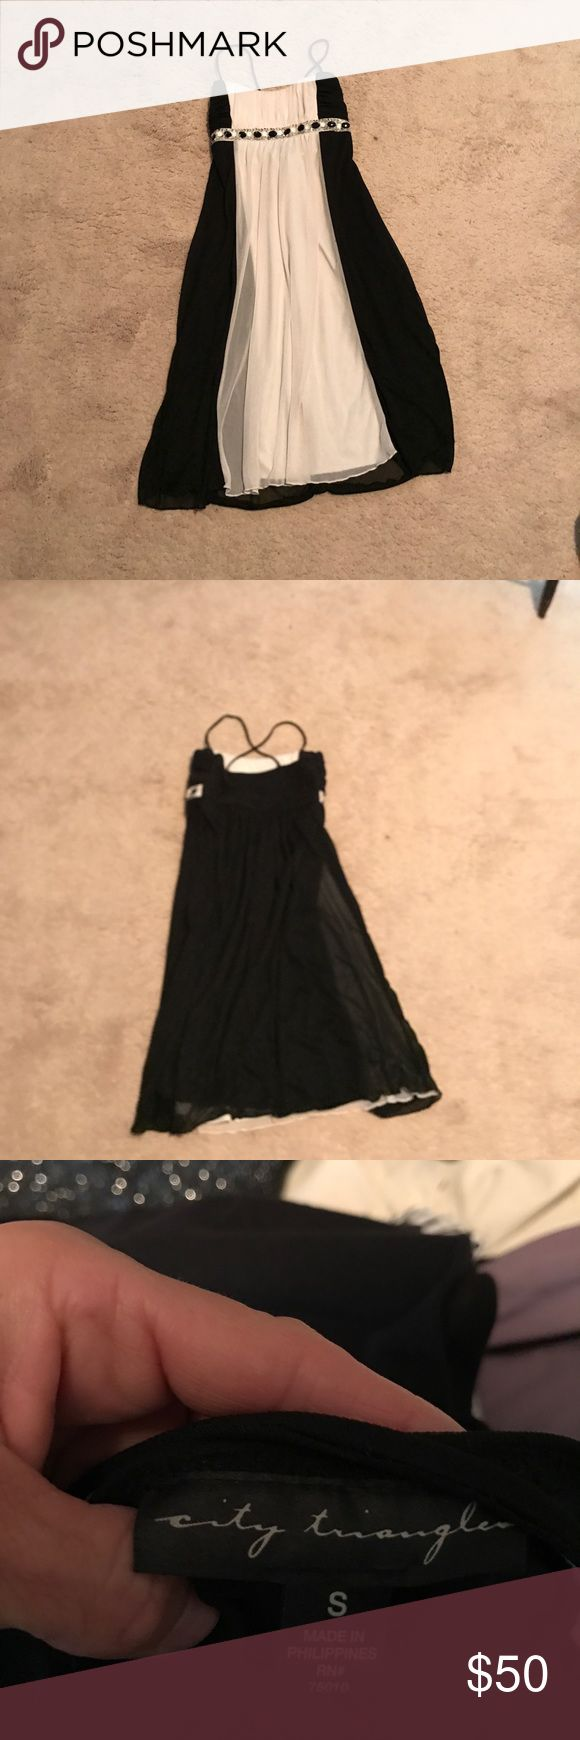 Black And White cocktail dress Black And White cocktail dress crisscross straps in the back. To the knee size small City Triangles Dresses